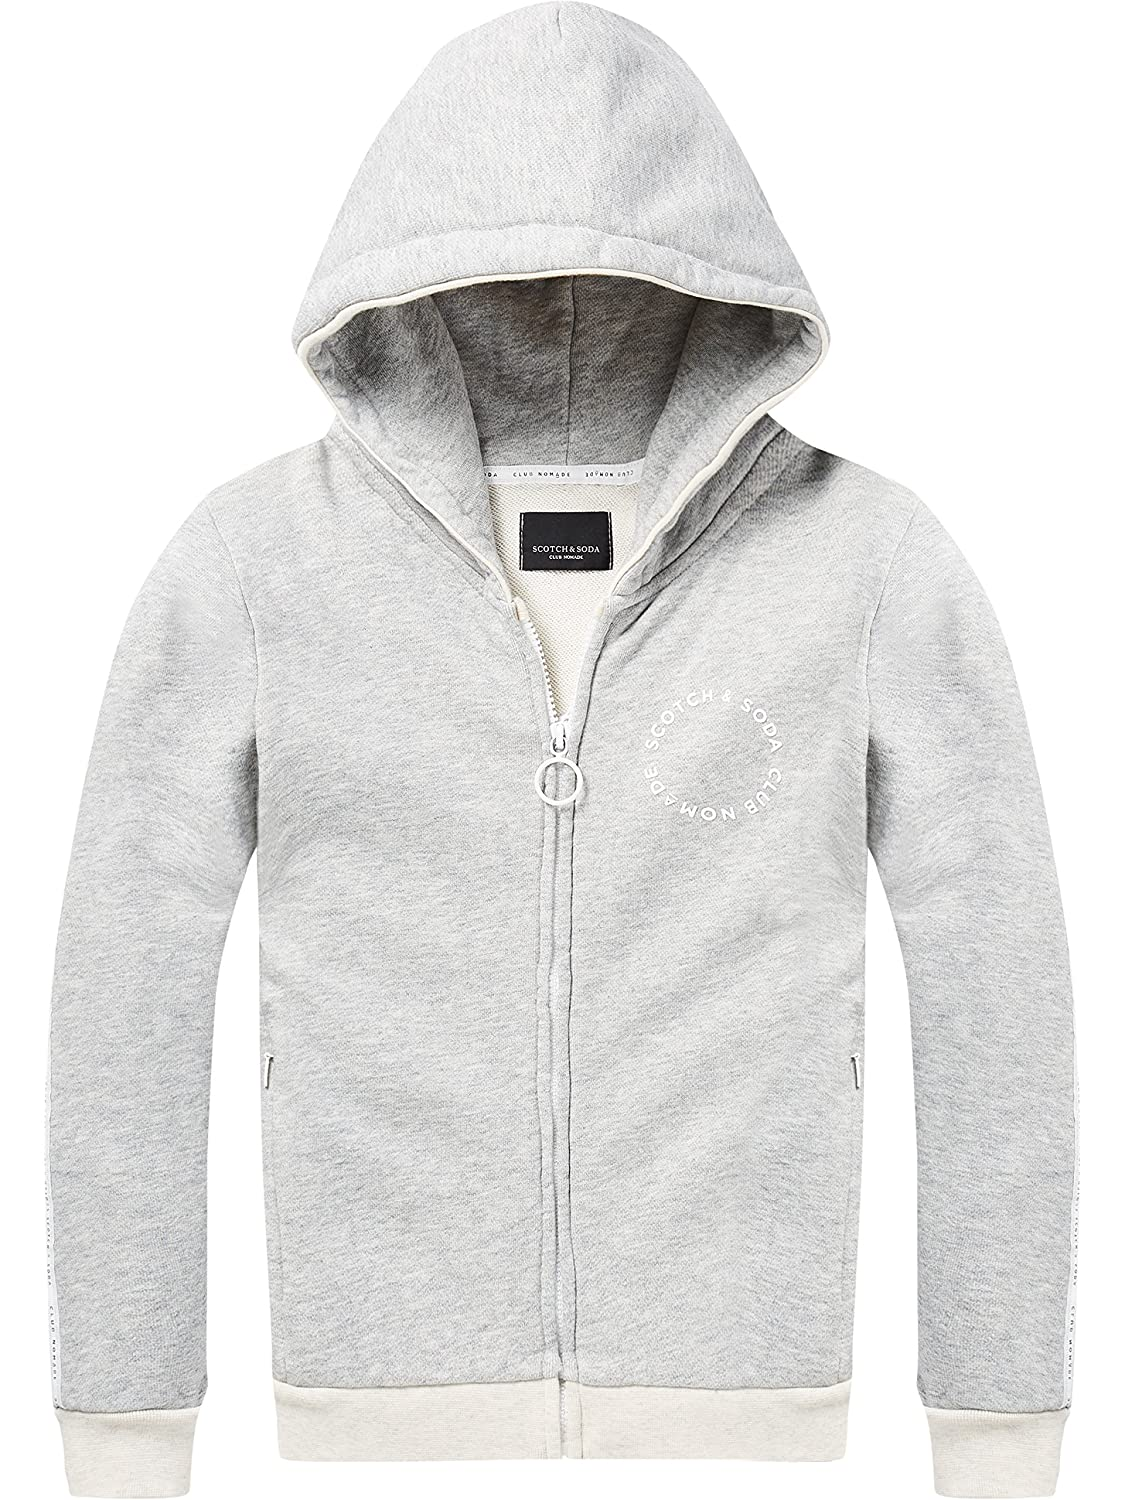 Scotch & Soda Club Nomade Hooded Zip Through Sweat, Felpa Bambino Scotch & Soda Shrunk